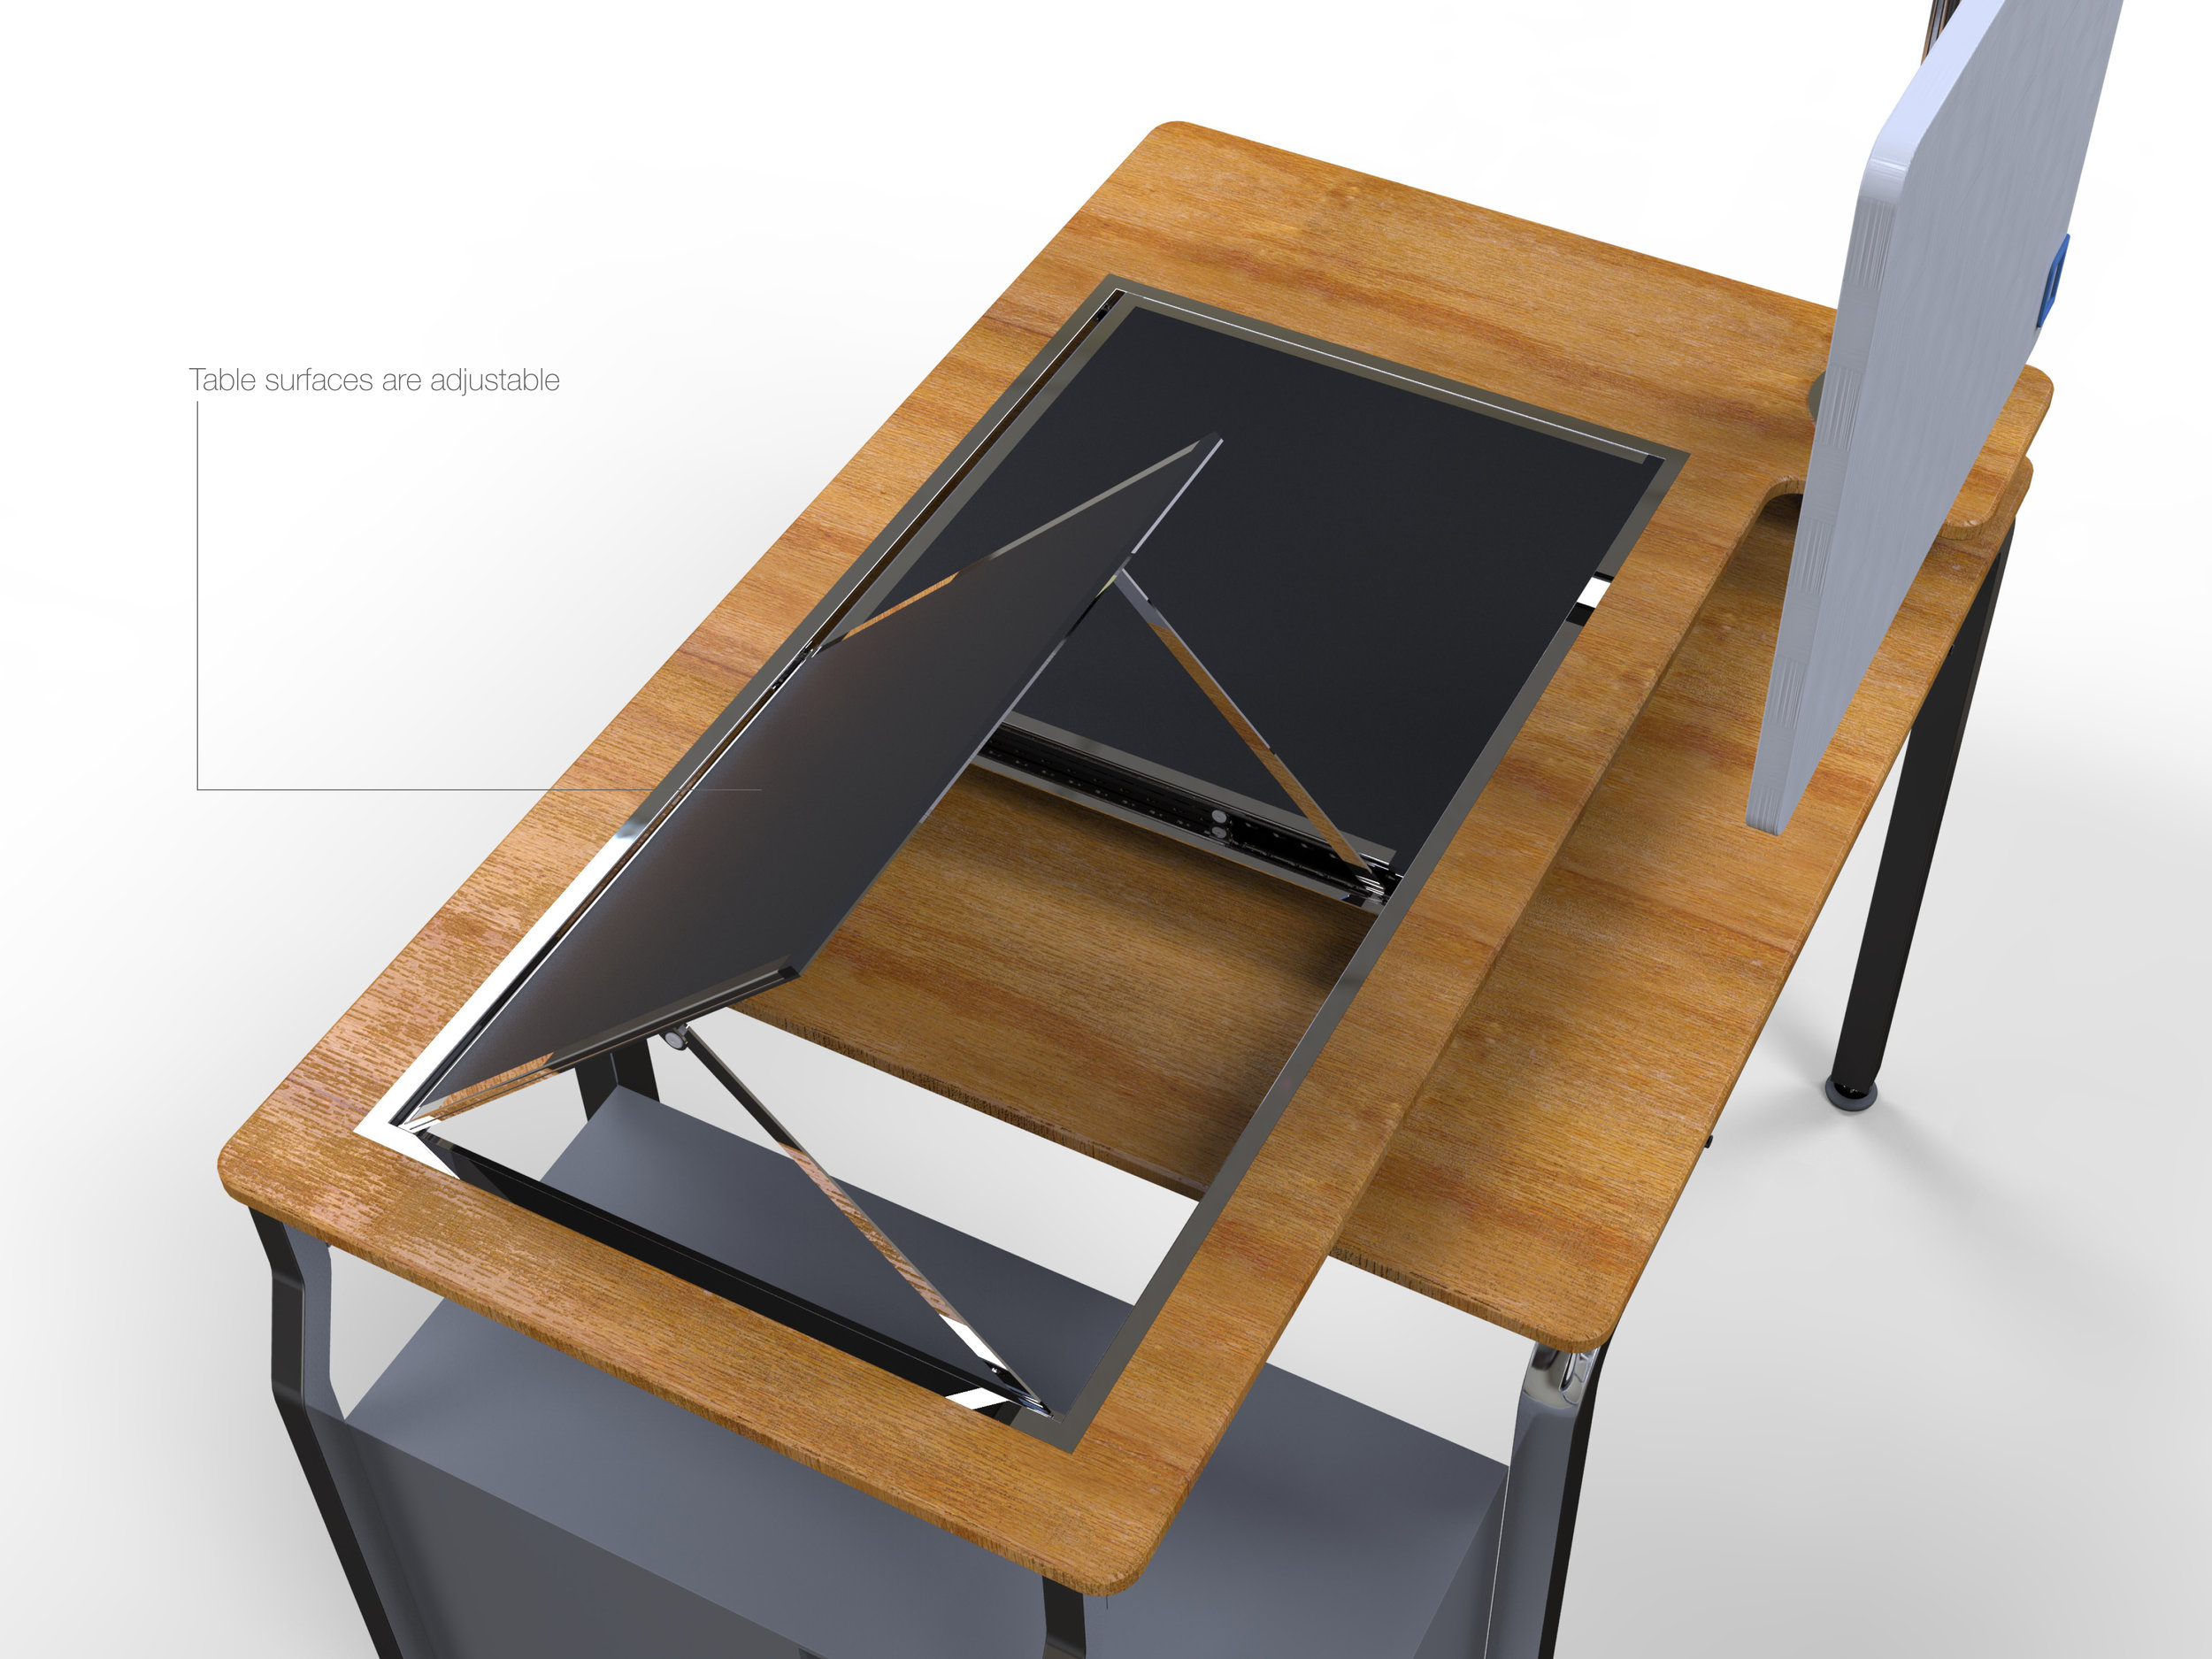 Axis Desk feature render